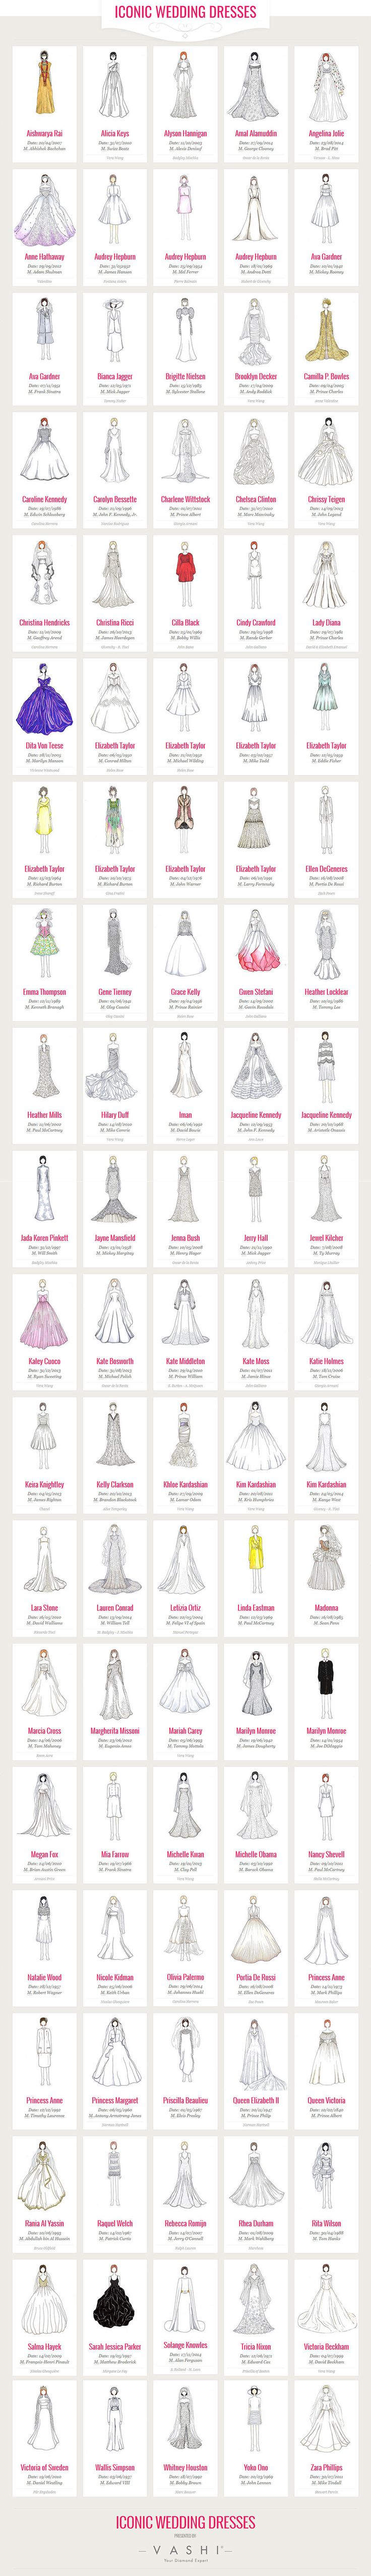 The 100 Most Iconic Celebrity Wedding Gowns of All Time